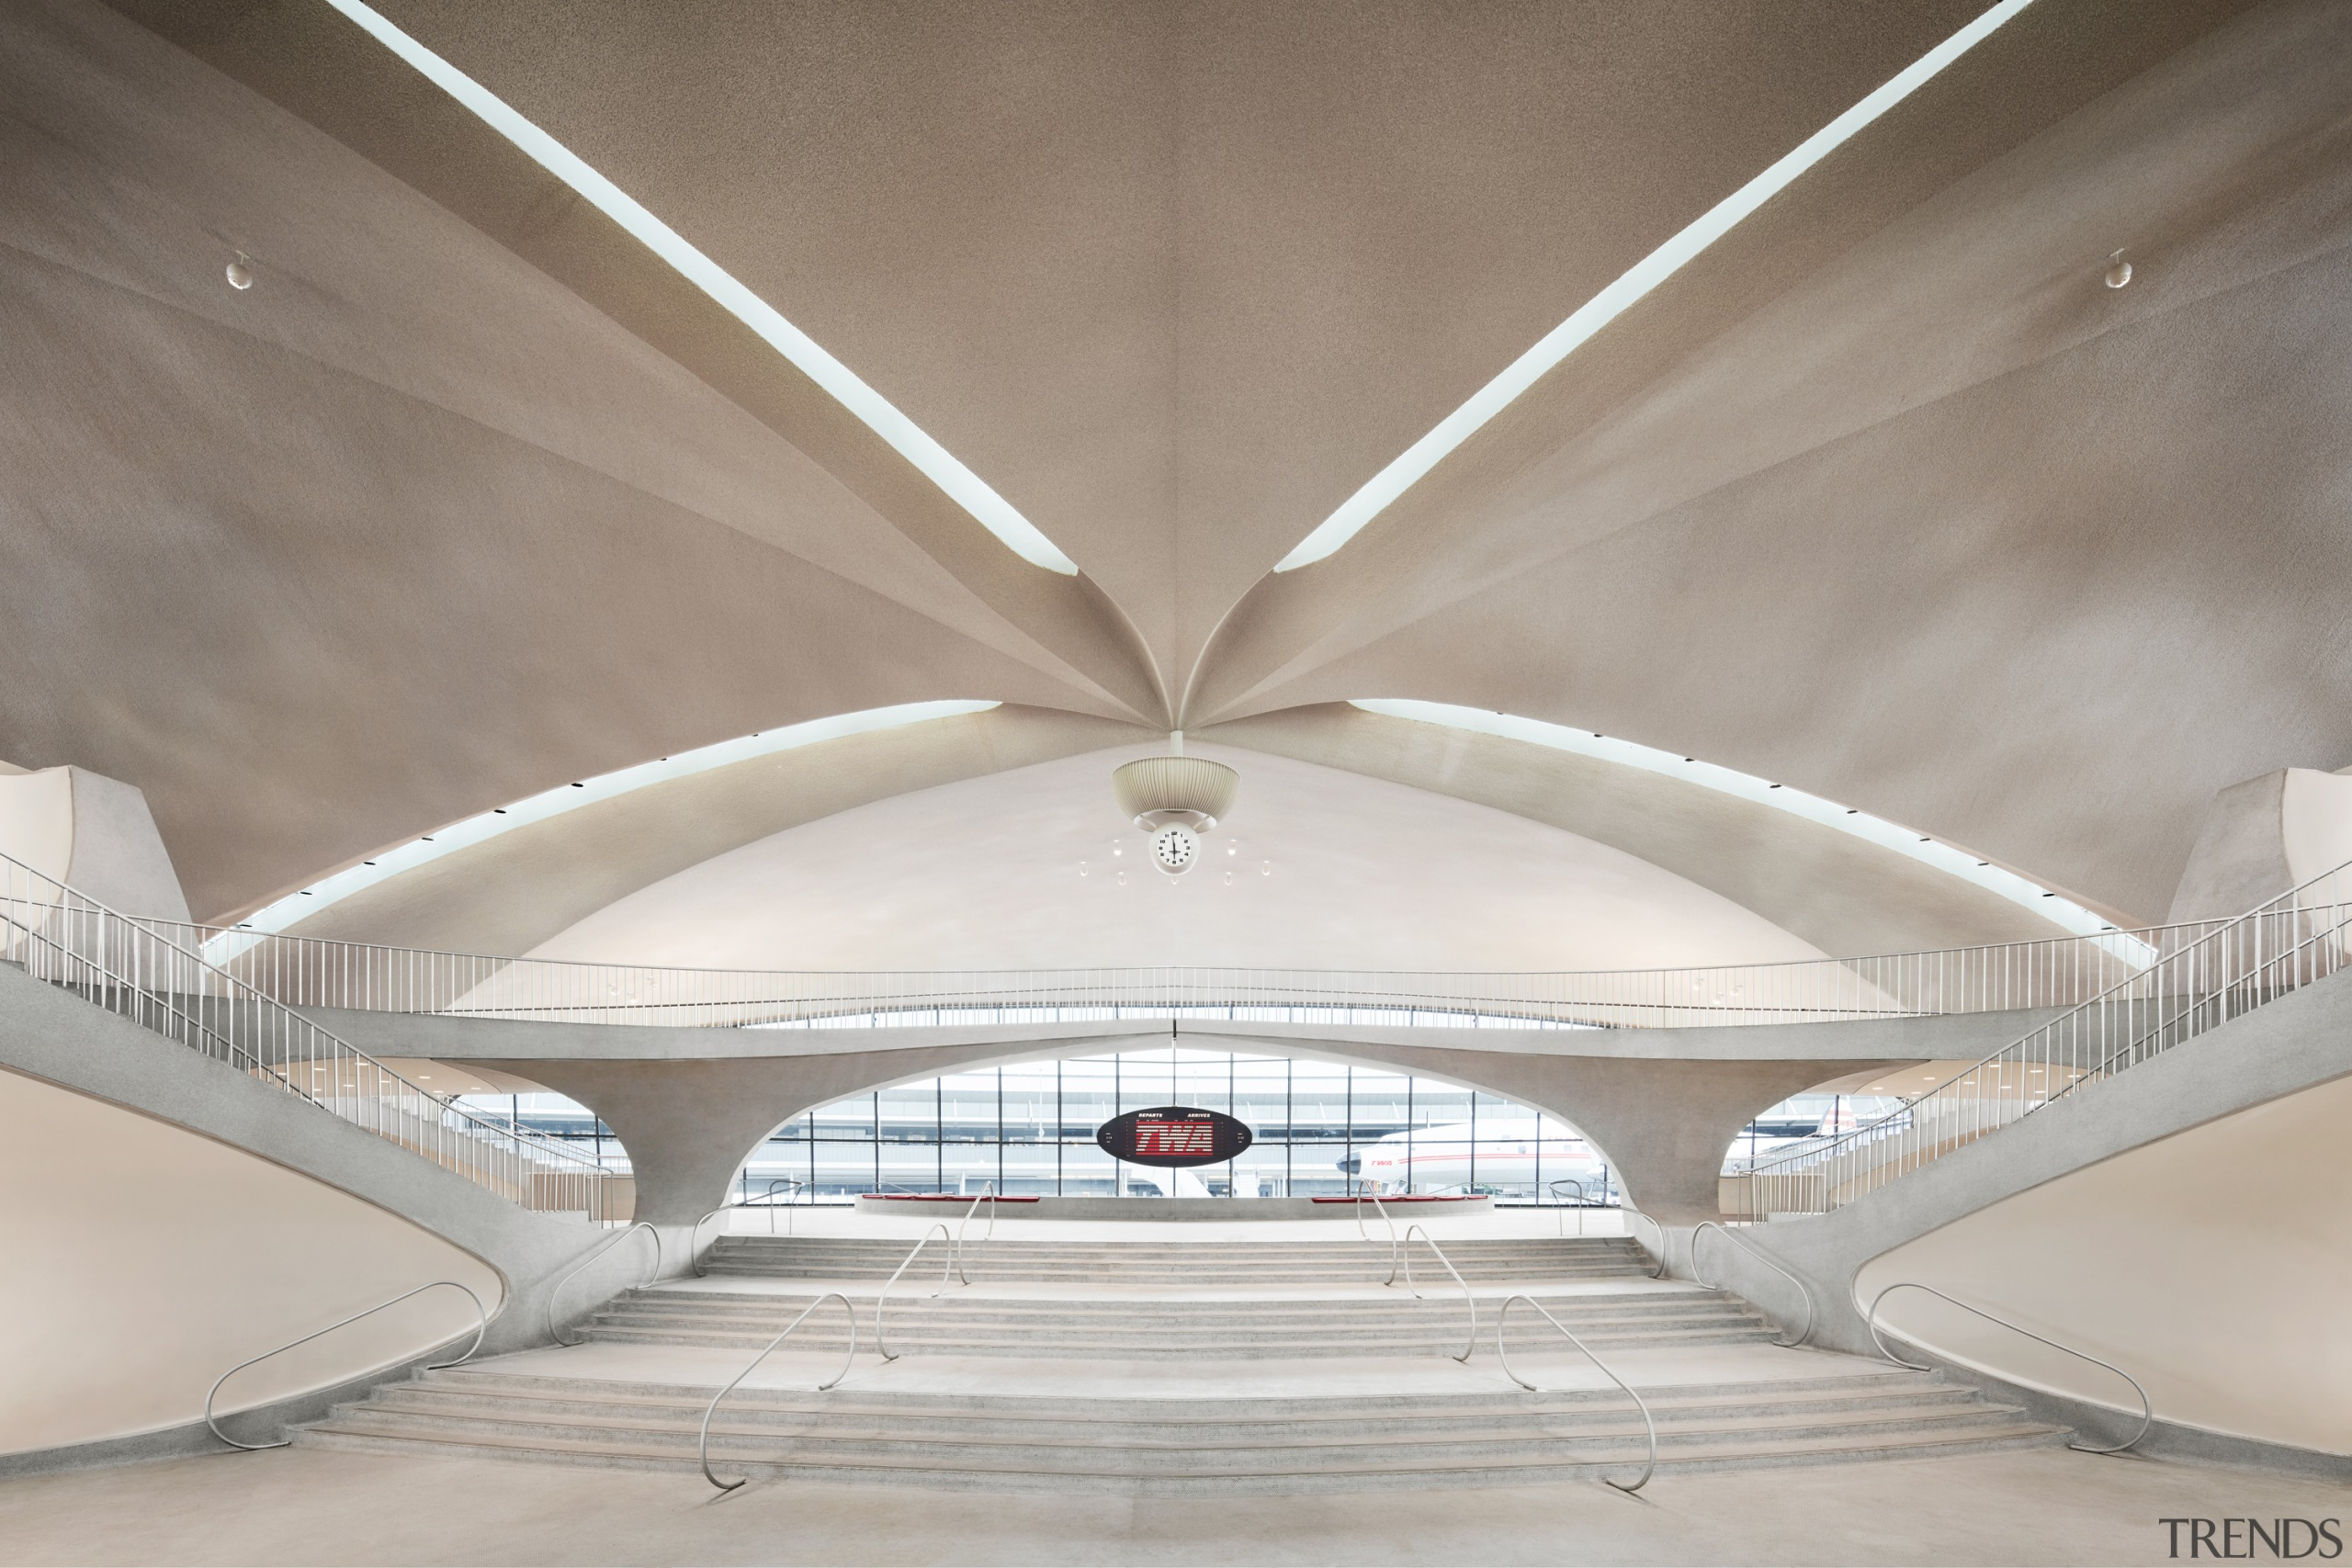 A view toward The Sunken Lounge and the architecture, building, Sunken Lounge,  TWA Hotel,  1958 Lockhead Constellation, Terminal Entrance